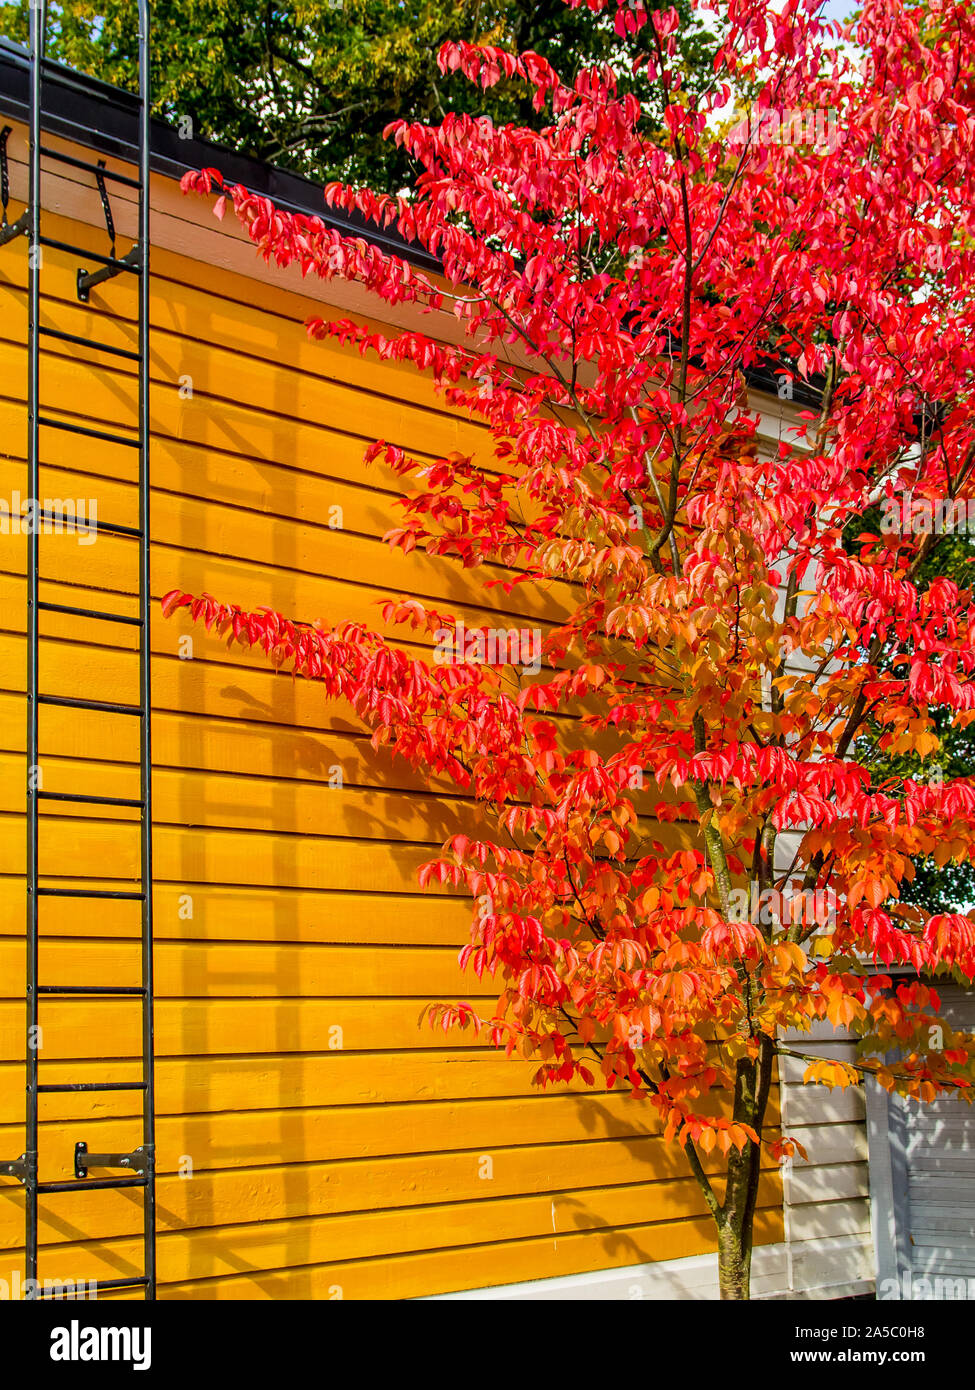 Bright red autumn colored Sargent's Cherry (Prunus sargentii) tree against yellow cottage wall - Portrait Stock Photo